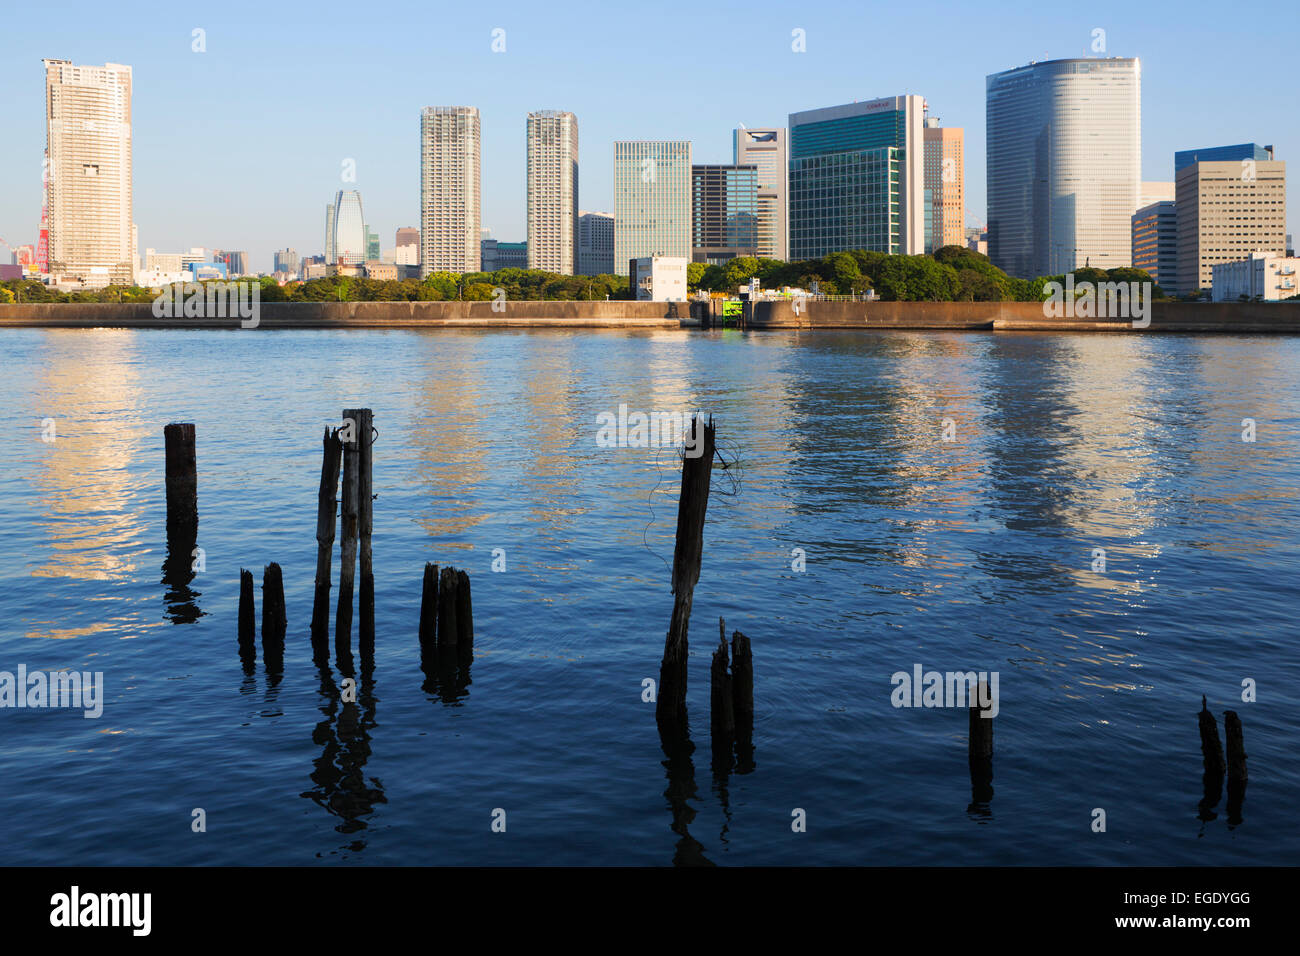 View over Sumida River of skyscrapers, Tokyo, Japan - Stock Image